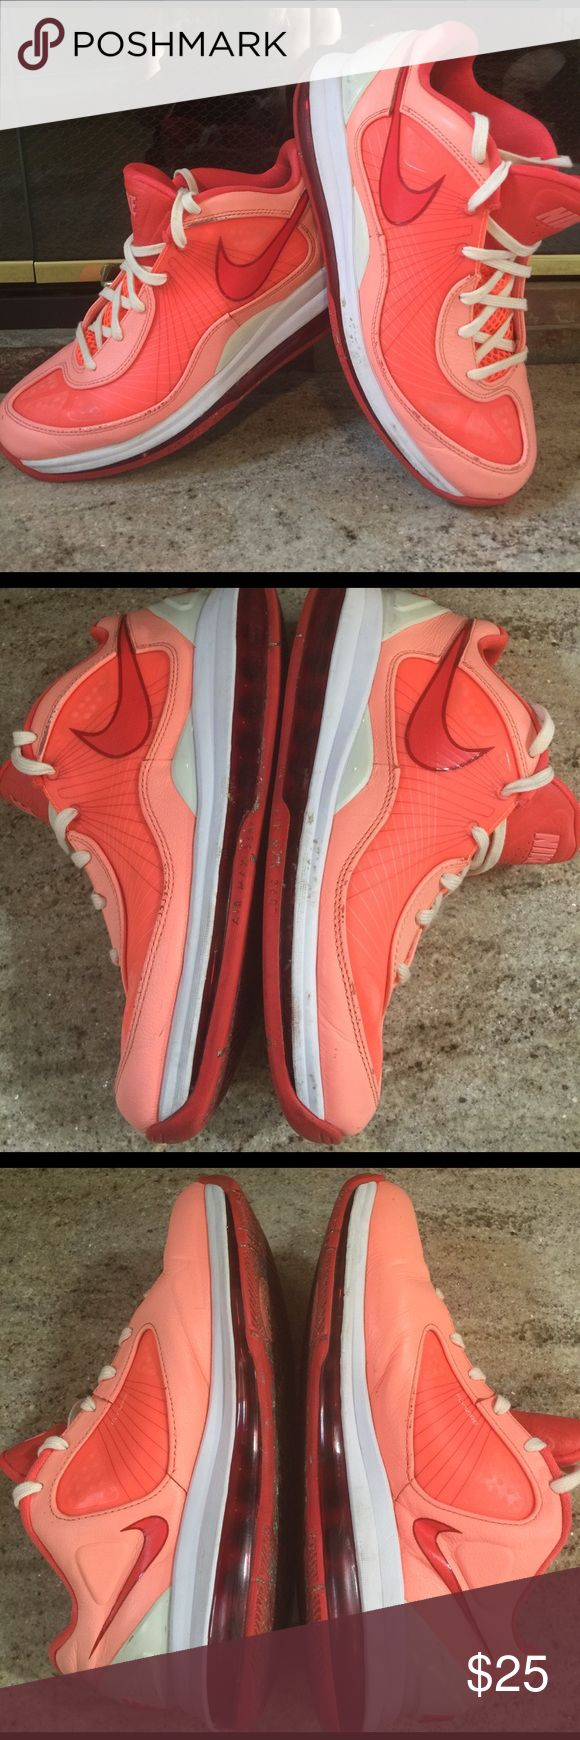 ☀️🍊NIKE FLYWIRE  AIRMAX 360 Nike fly wire air max 360 men's athletic shoes size 9 1/2. Theses shoes do have imperfections as seen in pictures but in good standard shape😀 Nike Shoes Athletic Shoes